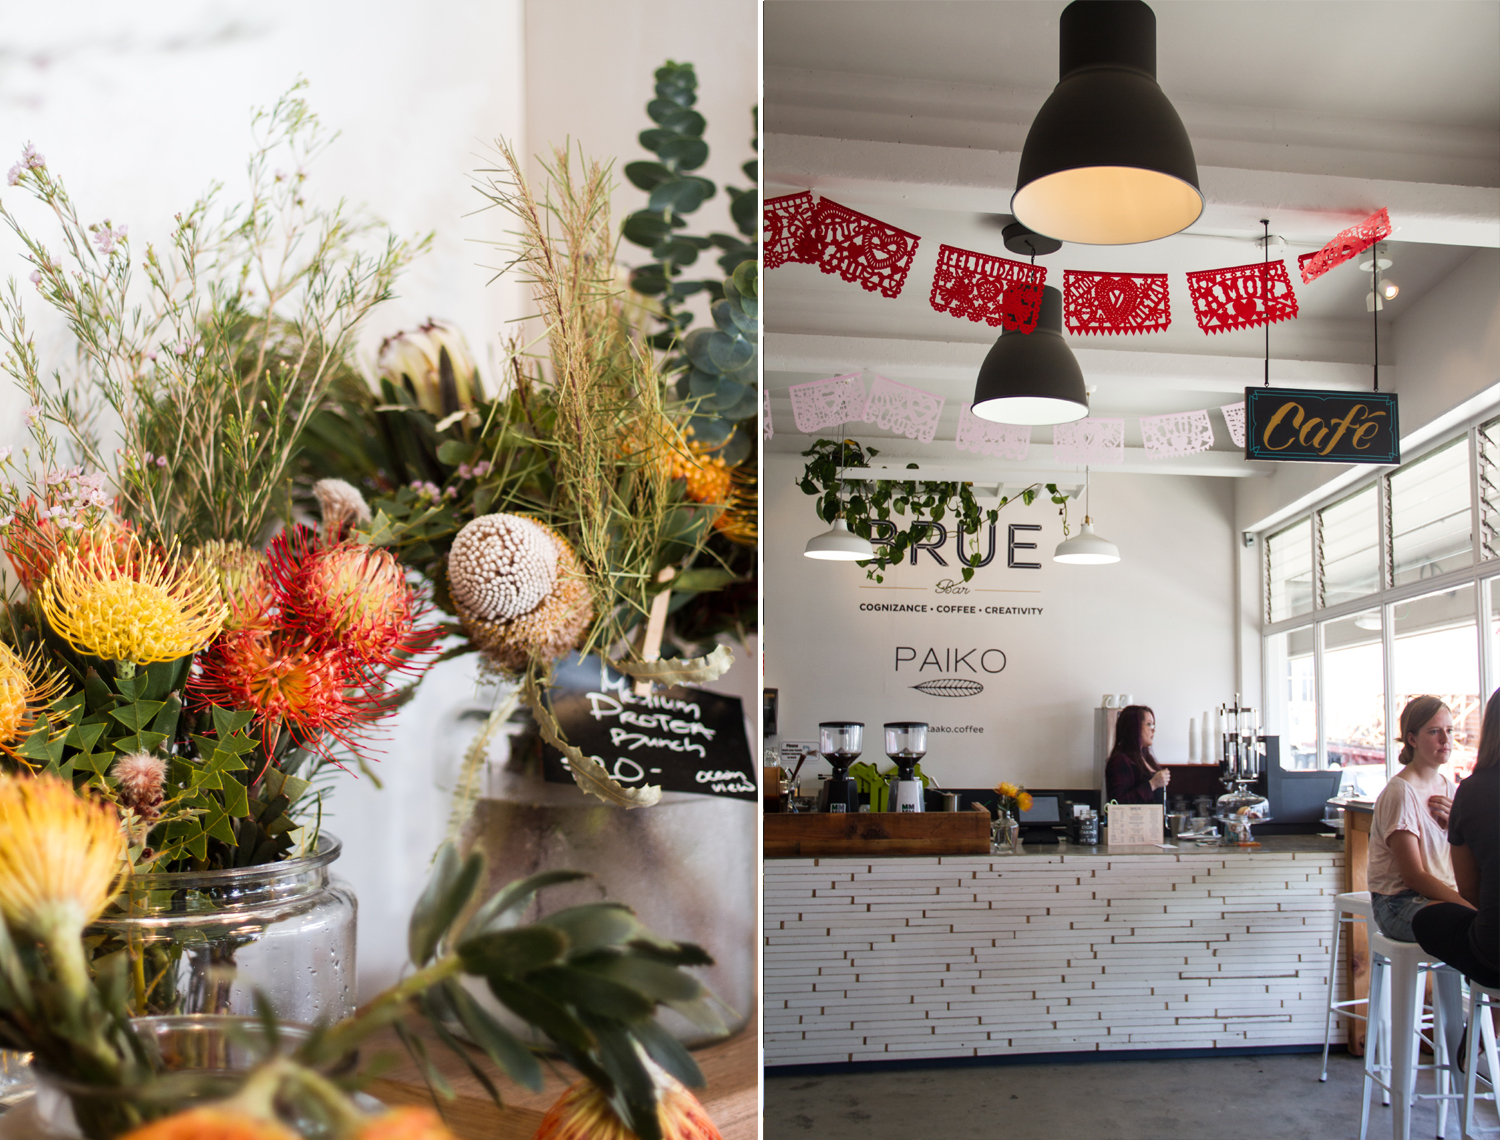 [left:] Lovely floral arrangement [right:] Brue Bar inside Paiko-- their teas and coffee are amazing!